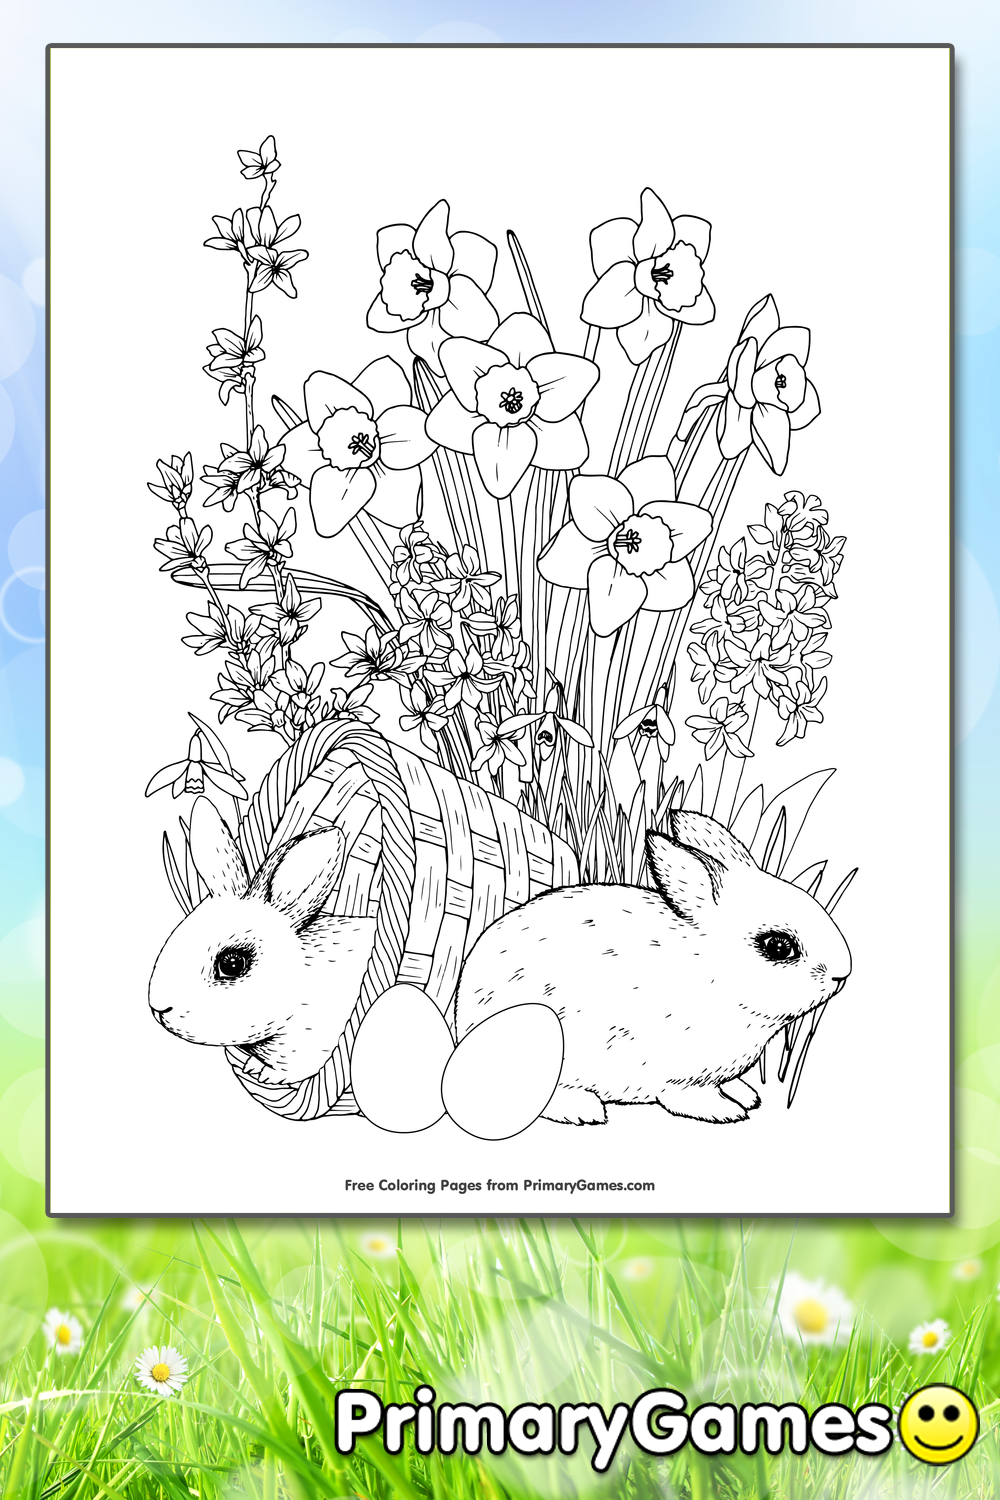 Bunnies and Spring Flowers Coloring